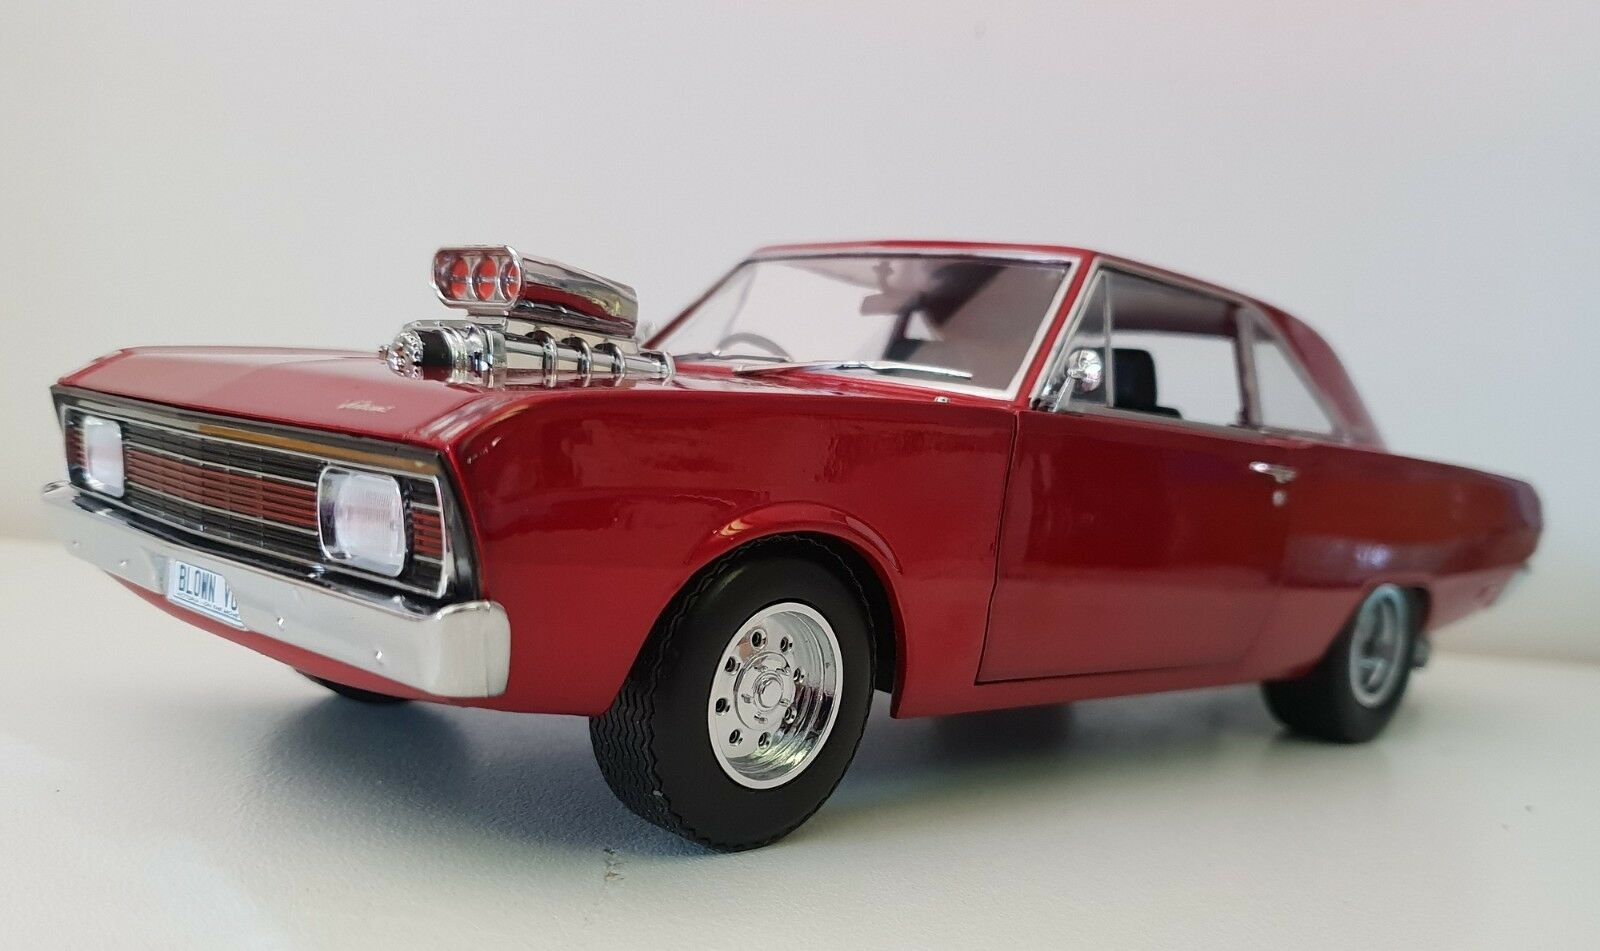 1 18 vertlight Collectibles 1970 Chrysler Valiant VG Pacer Drag Car - Candy rouge